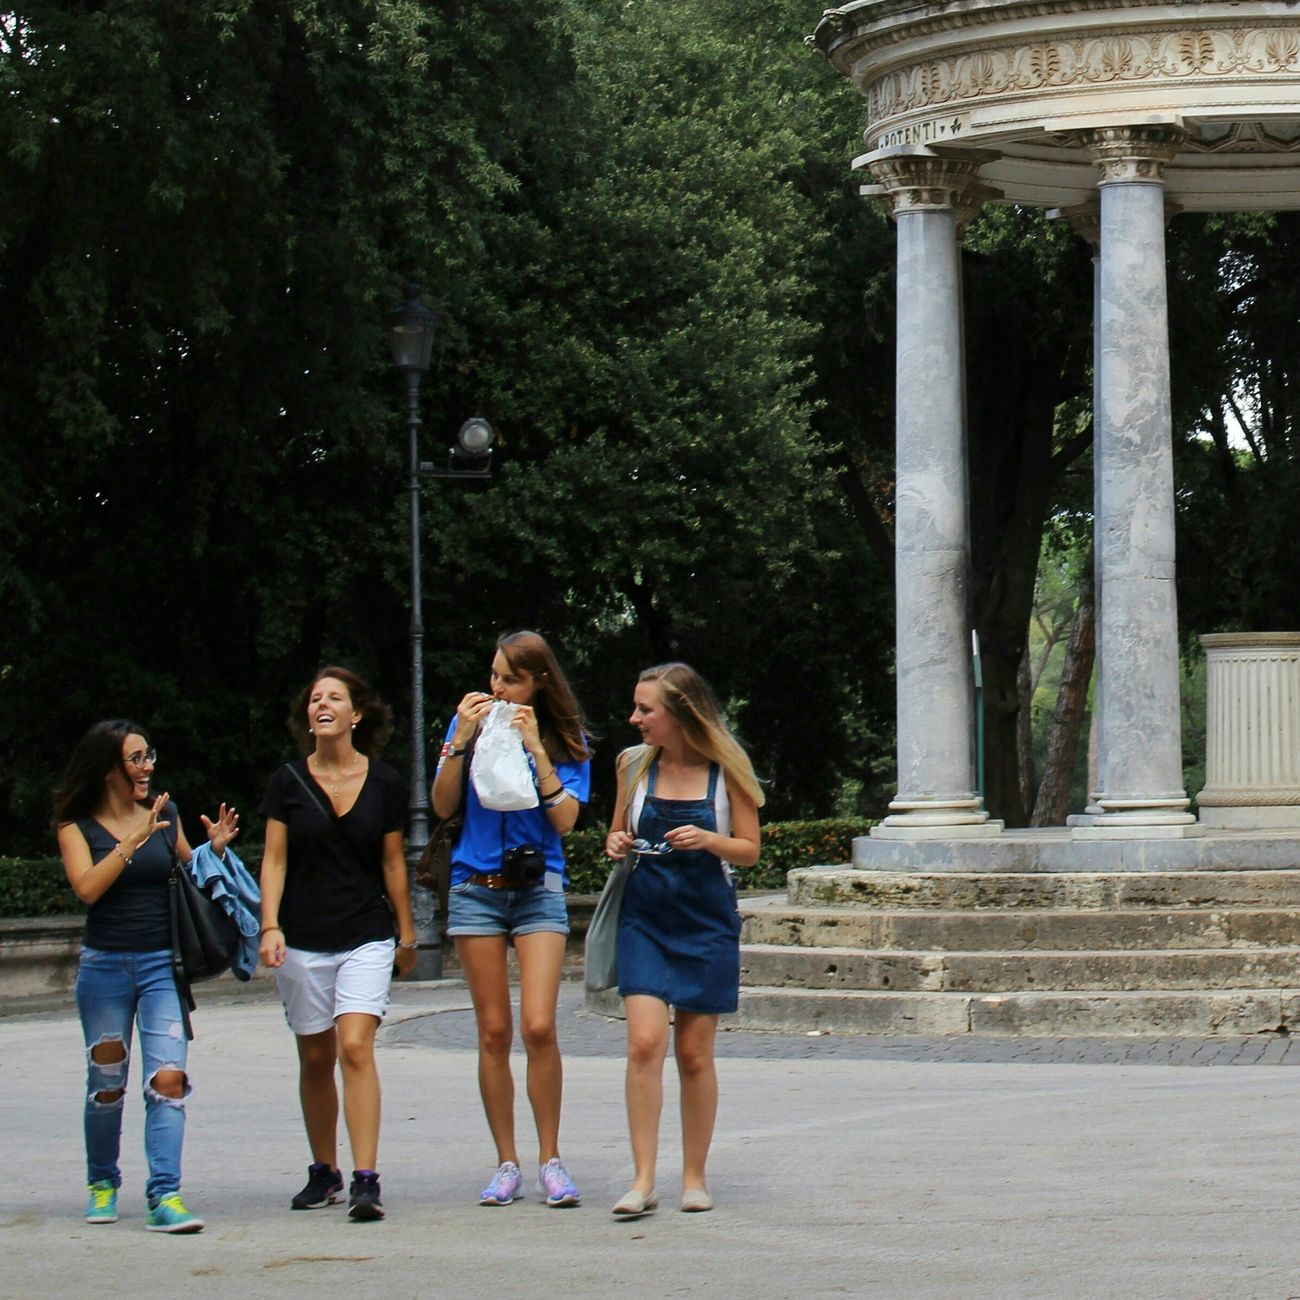 People And Places Outdoors Leisure Activity Villa Borghese Park Rome Italy🇮🇹